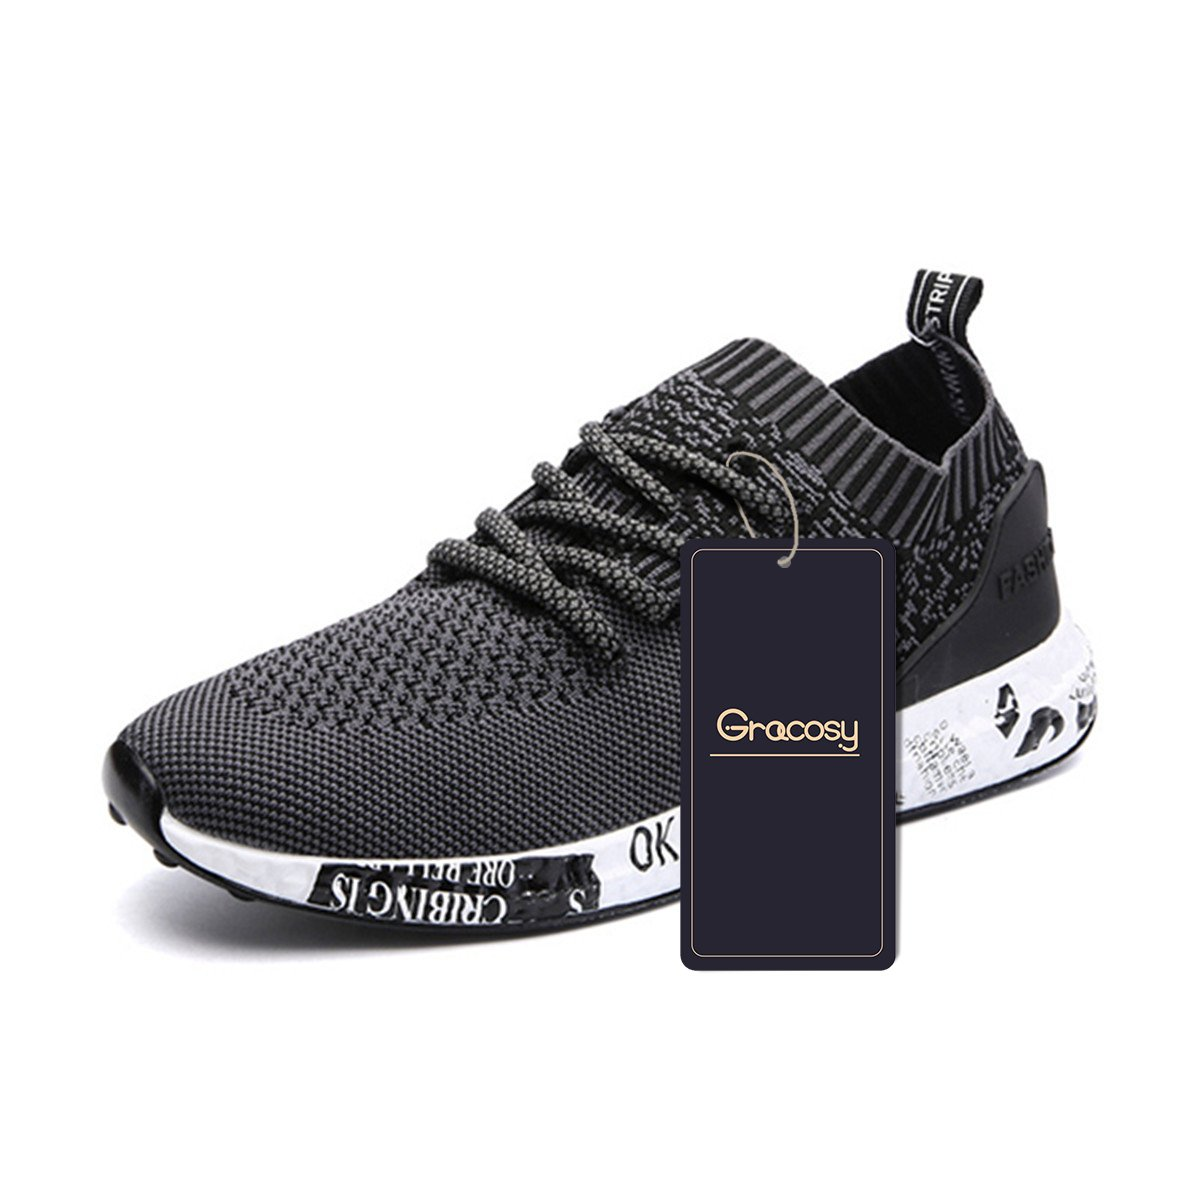 gracosy Casual Sport Shoes, Men's Lightweight Daily Walking Shoes Athletic Sports Shoes Breathable Fashion Sneakers Black 44 EU